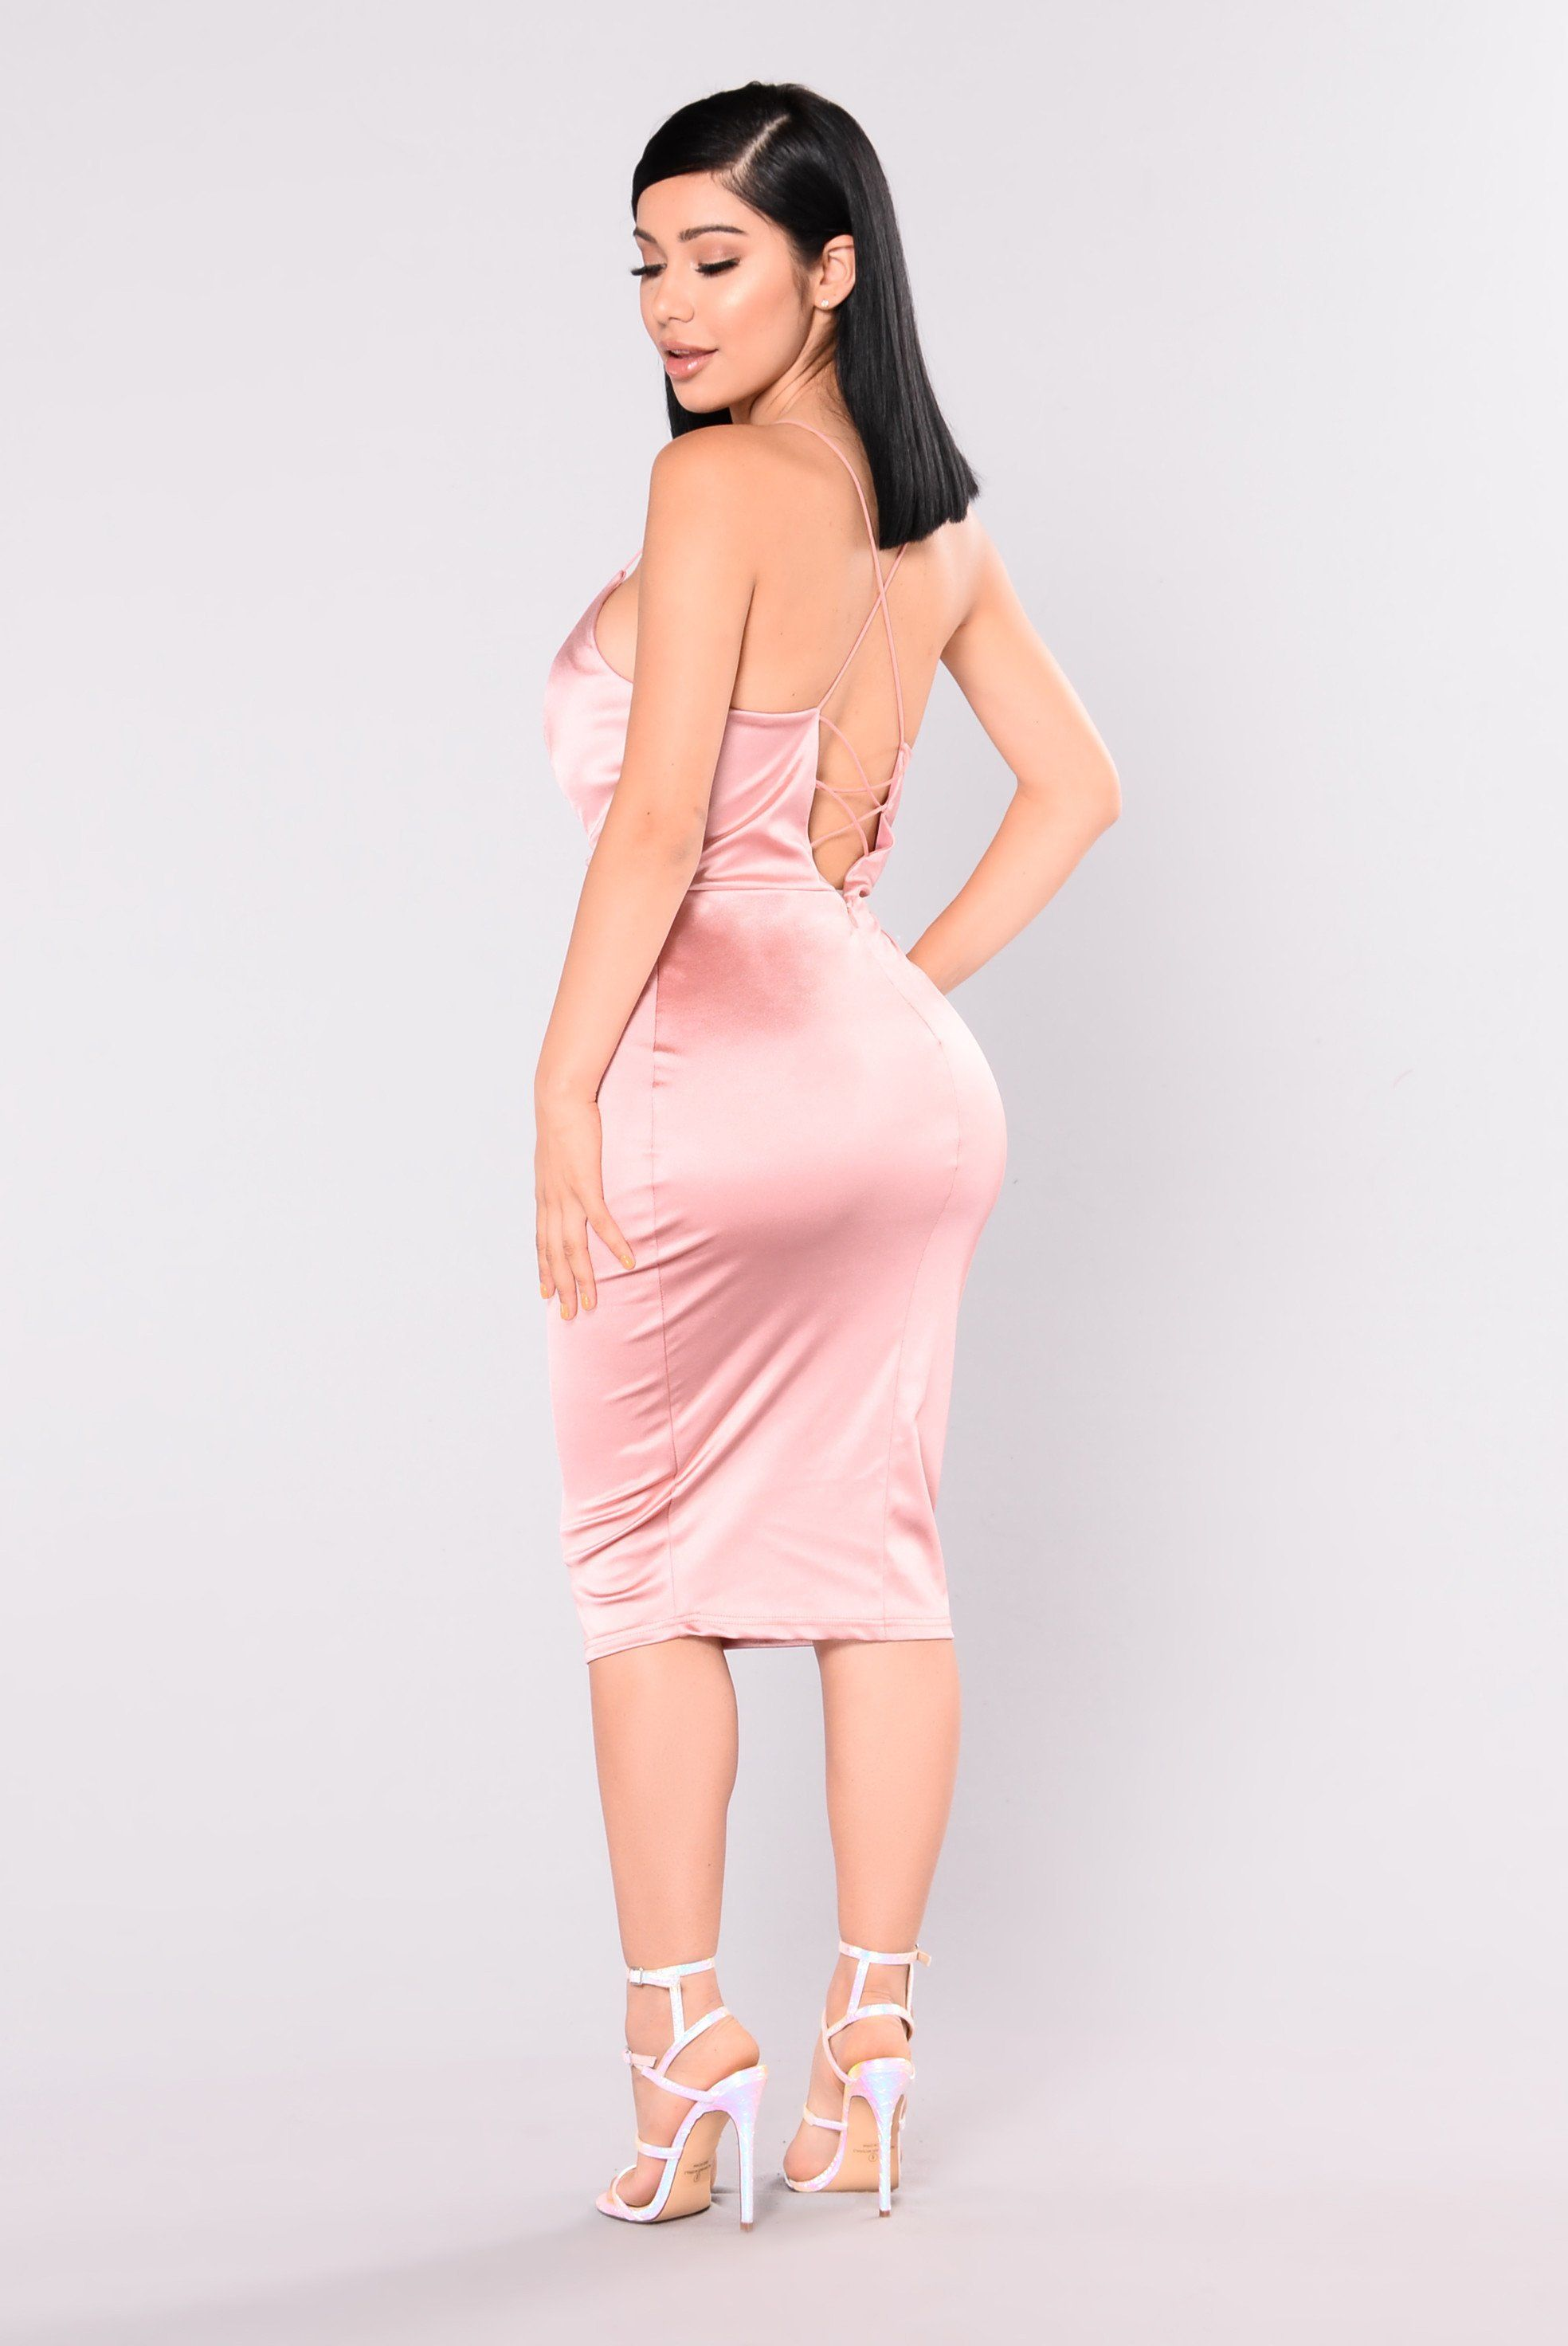 Starla Dress - Blush | Pinterest | Curvas, Vestidos ceñidos y ...